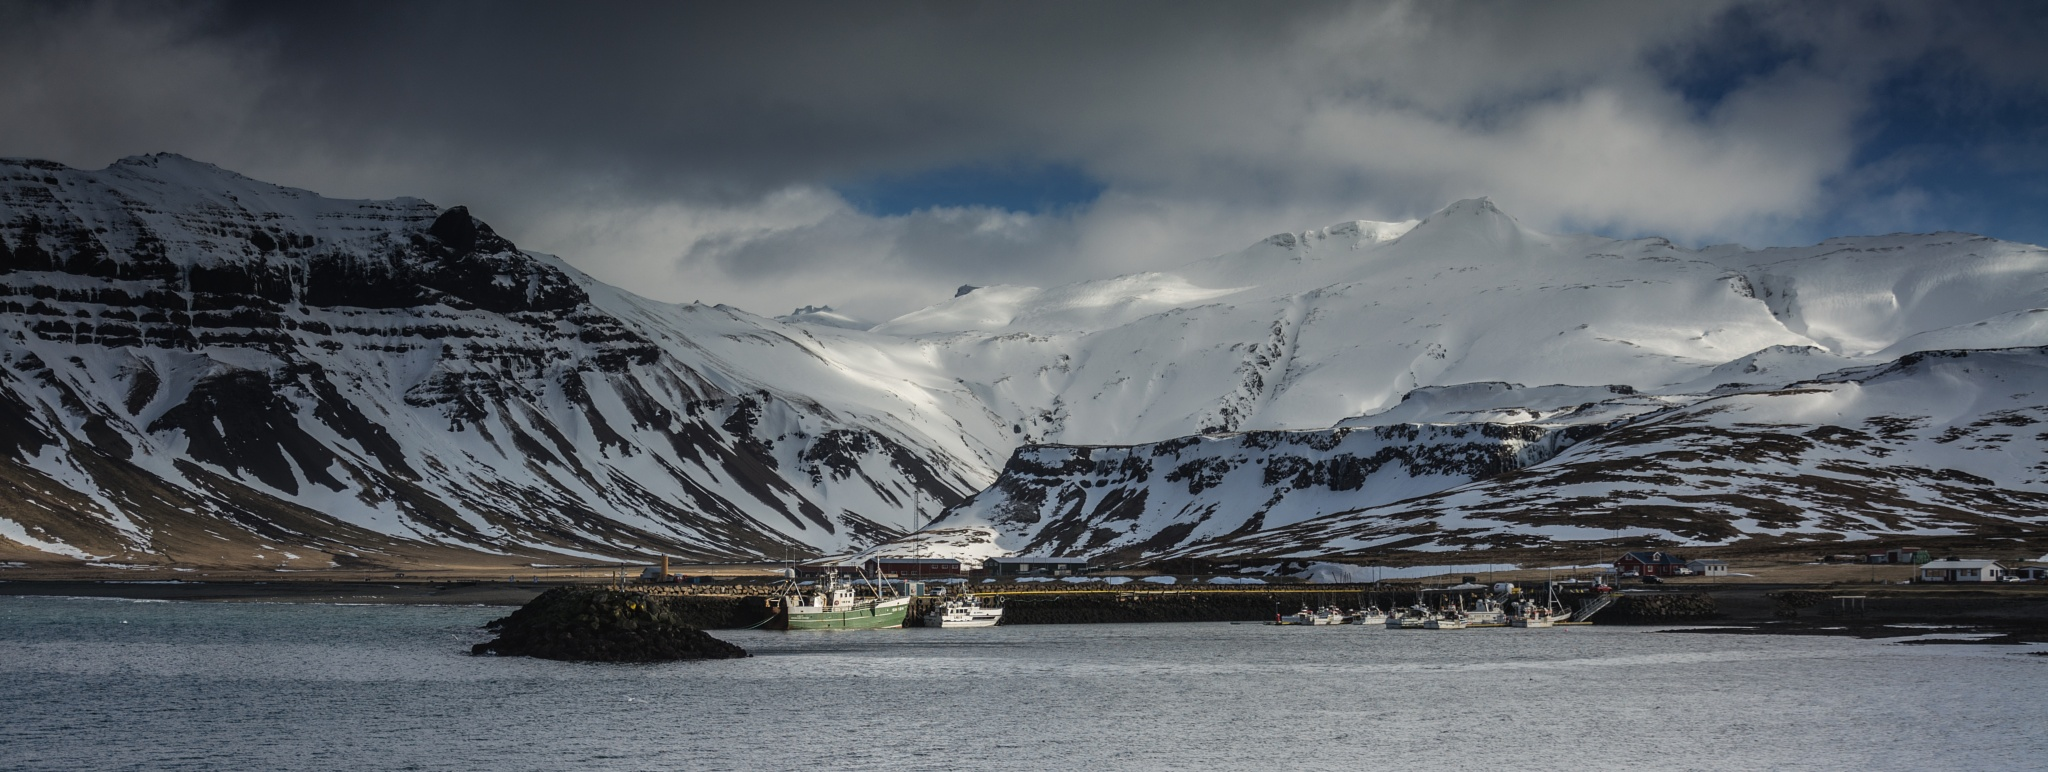 Safe Harbour in the cold by Poetsoftheheart